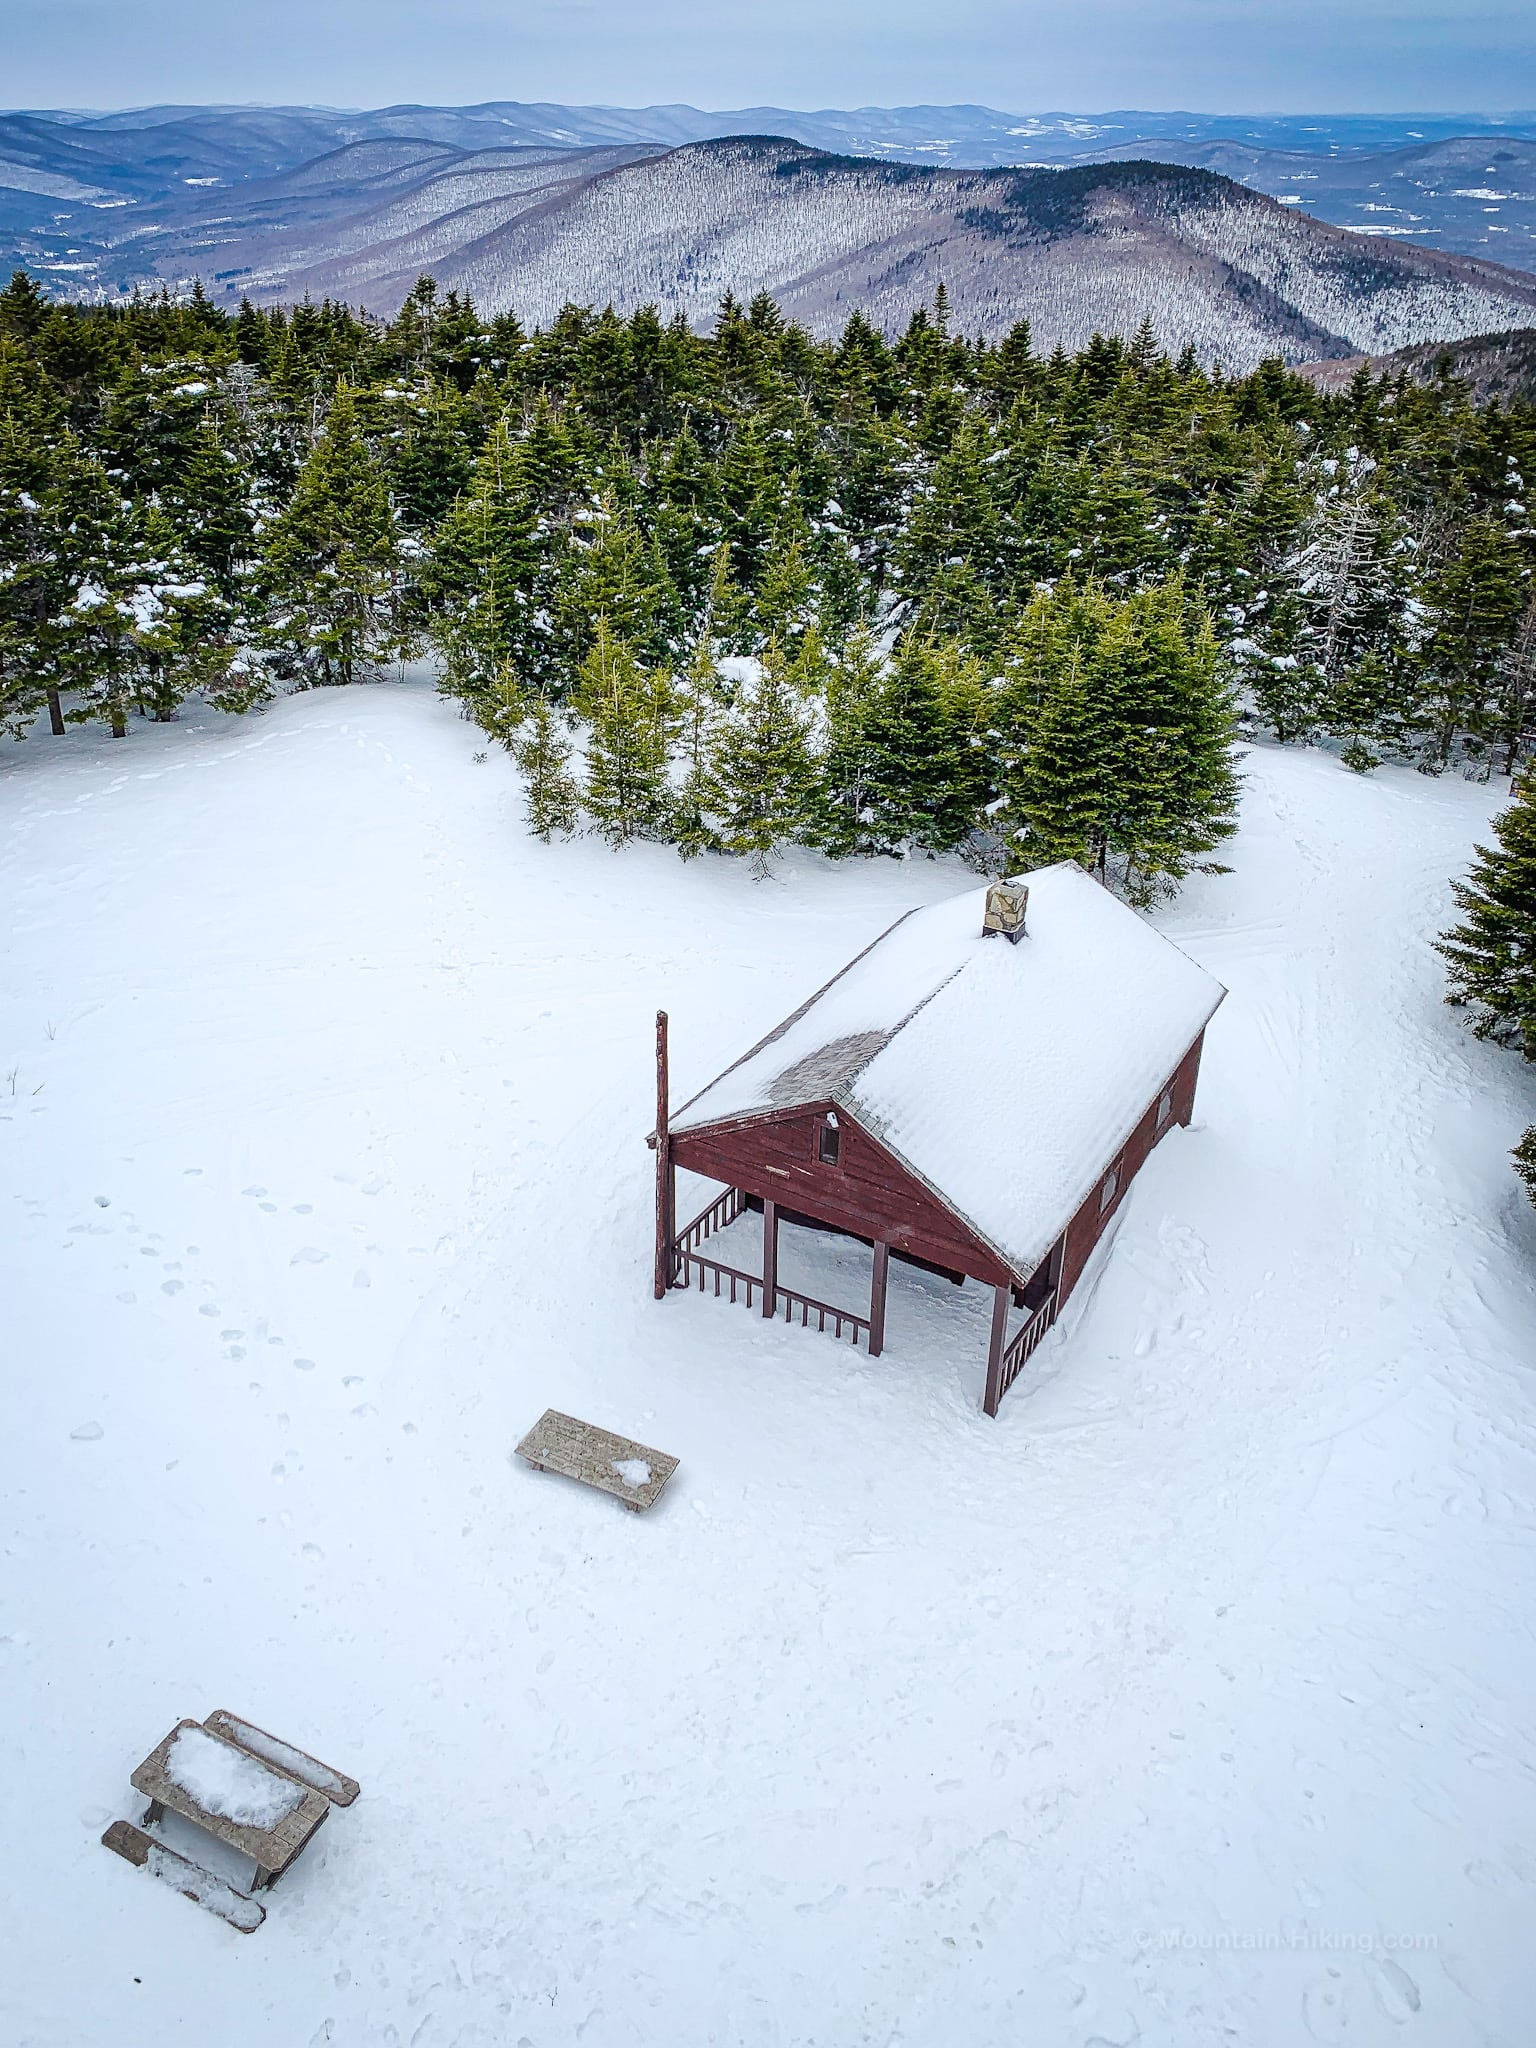 cabin and picnic tables in deep snow, mountains in distance